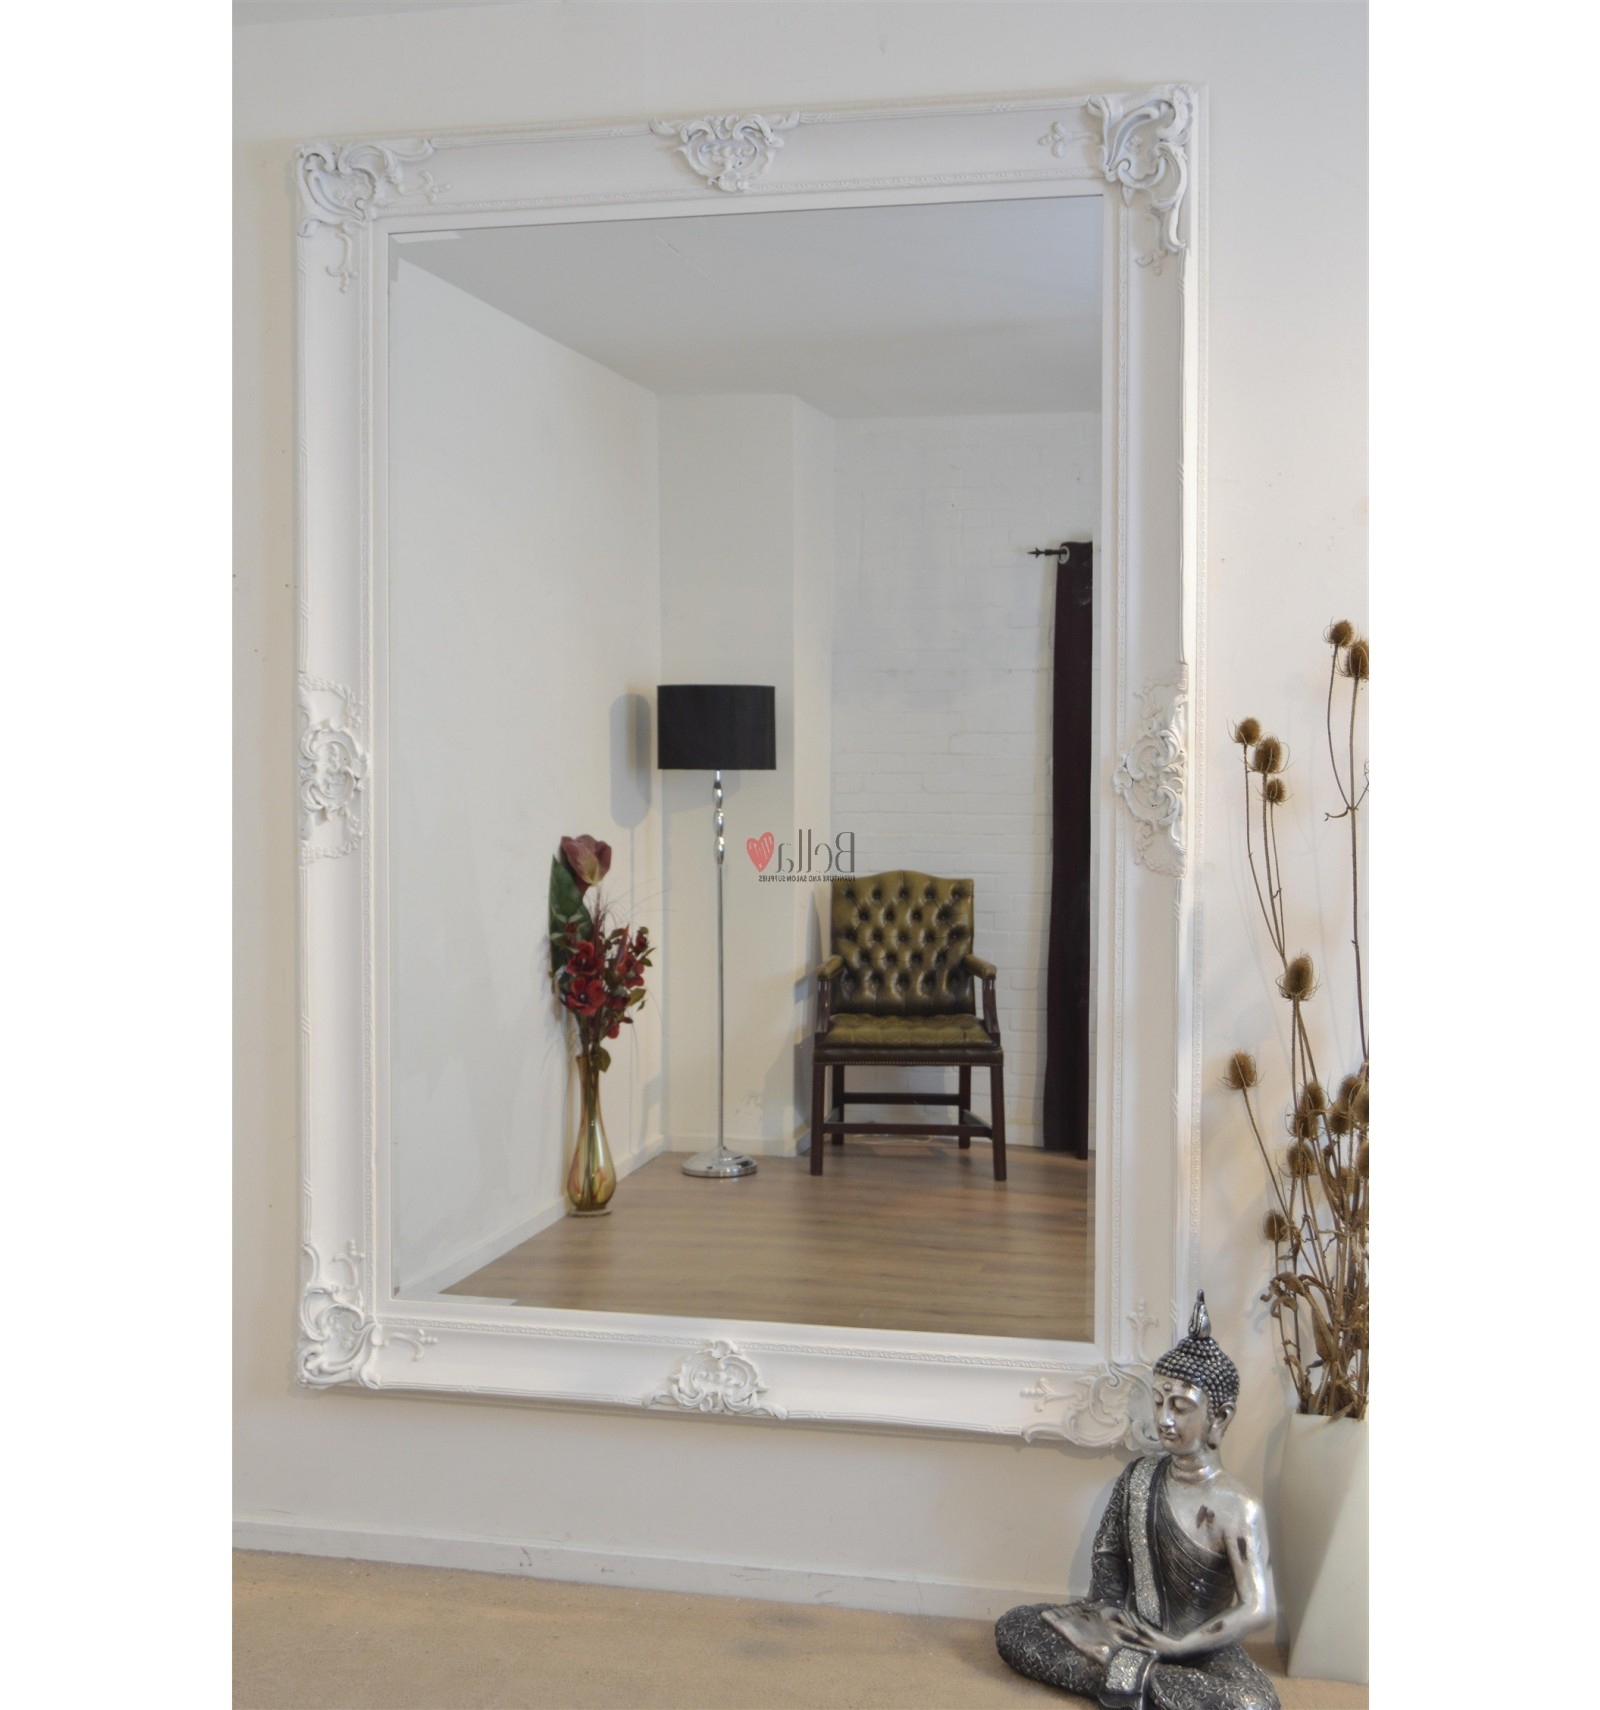 Salon Wall Mirrors Intended For Recent White Extra Large Wall Mirror (View 20 of 20)